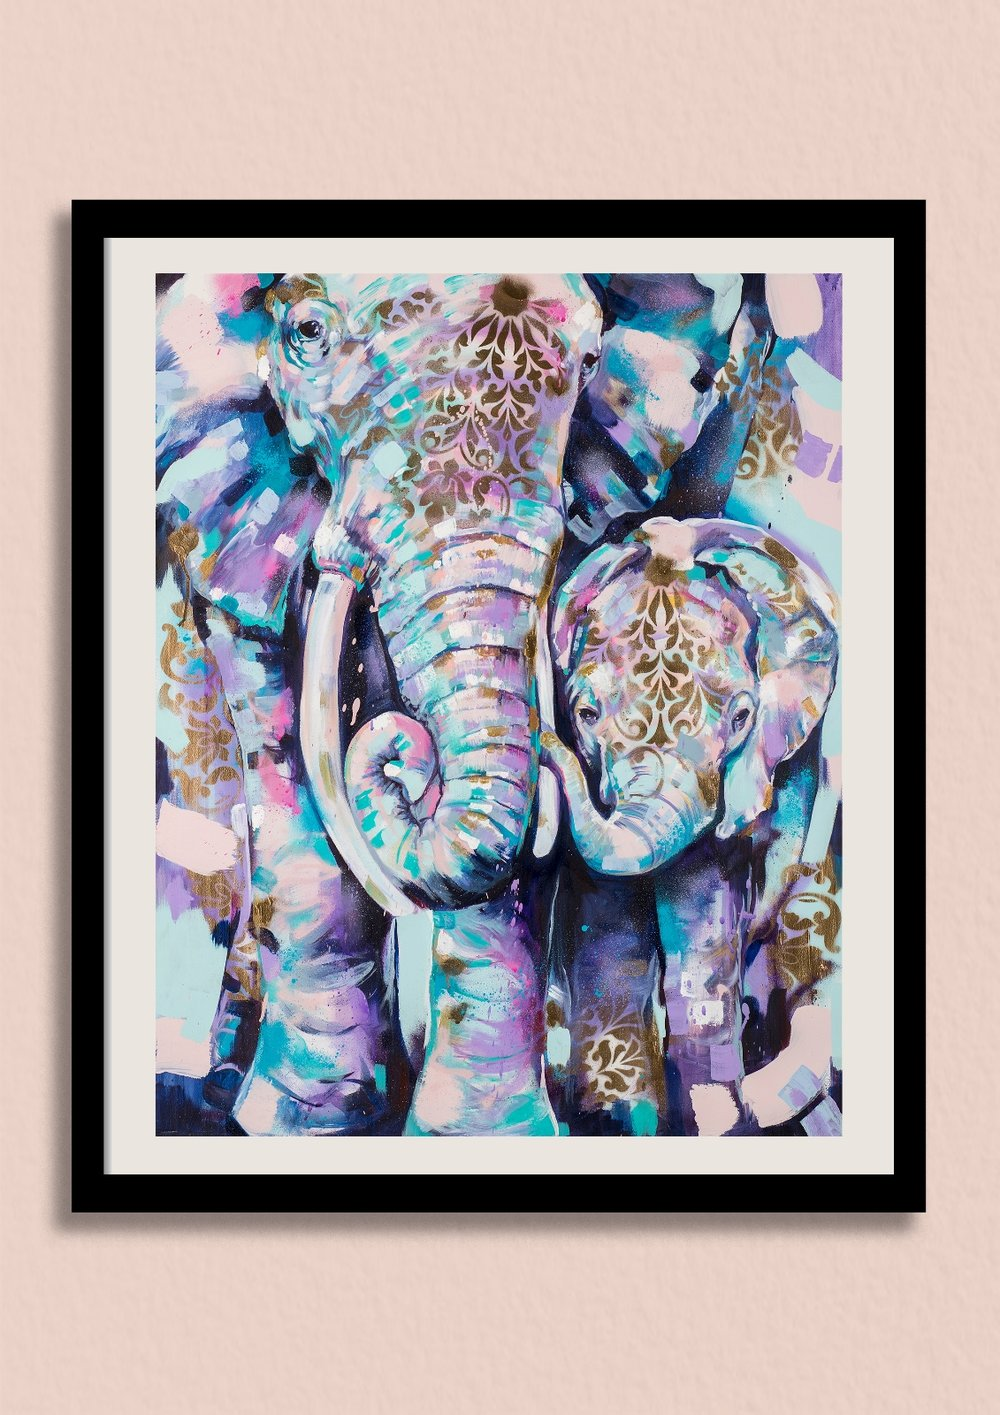 DEFEND - Sian Storey's most popular elephant artwork, available beautifully framed for the first time.Unframed giclée print £150Framed giclée print £220